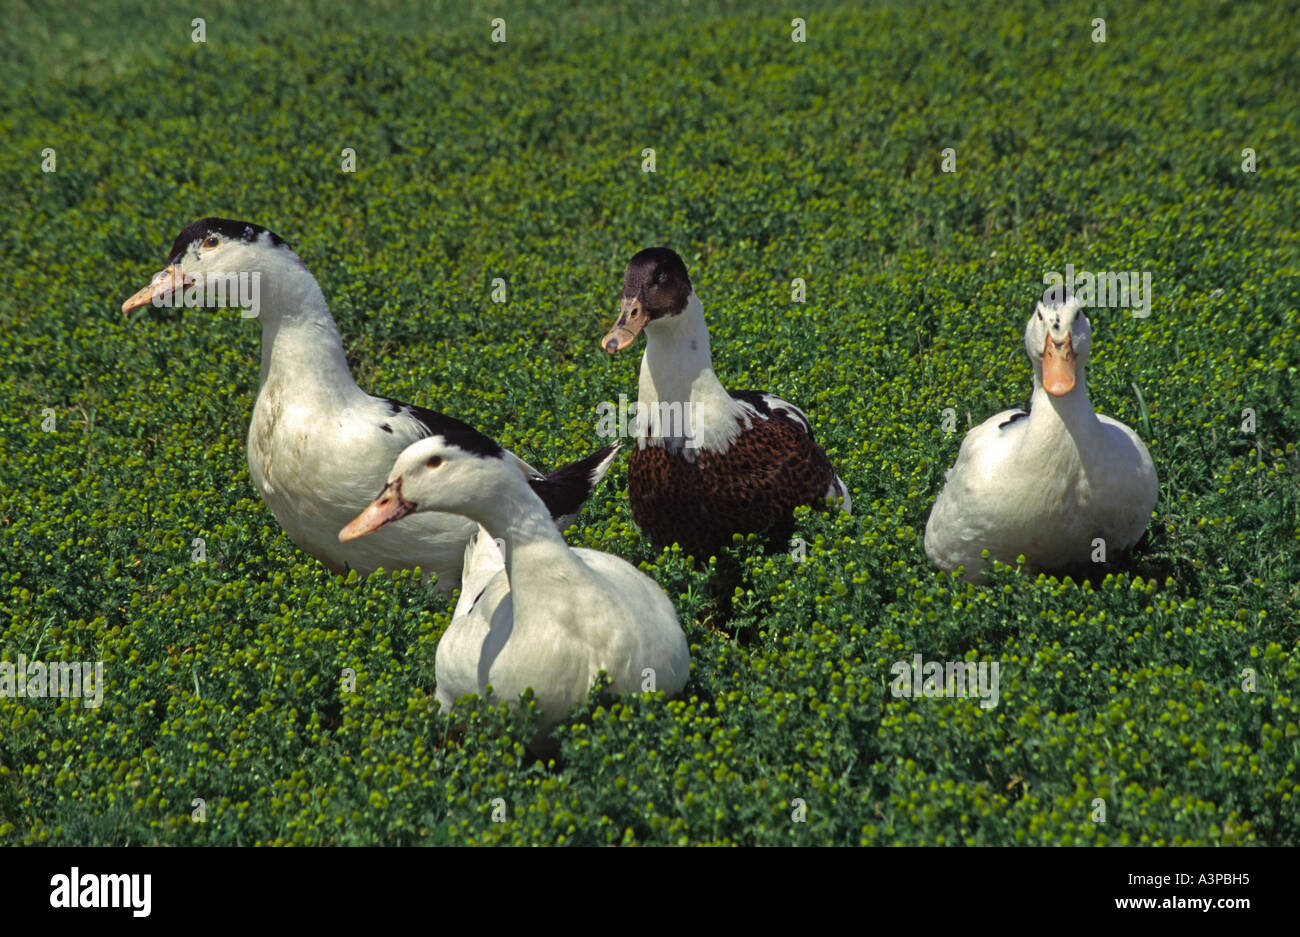 group of ducks toddling on field - Stock Image